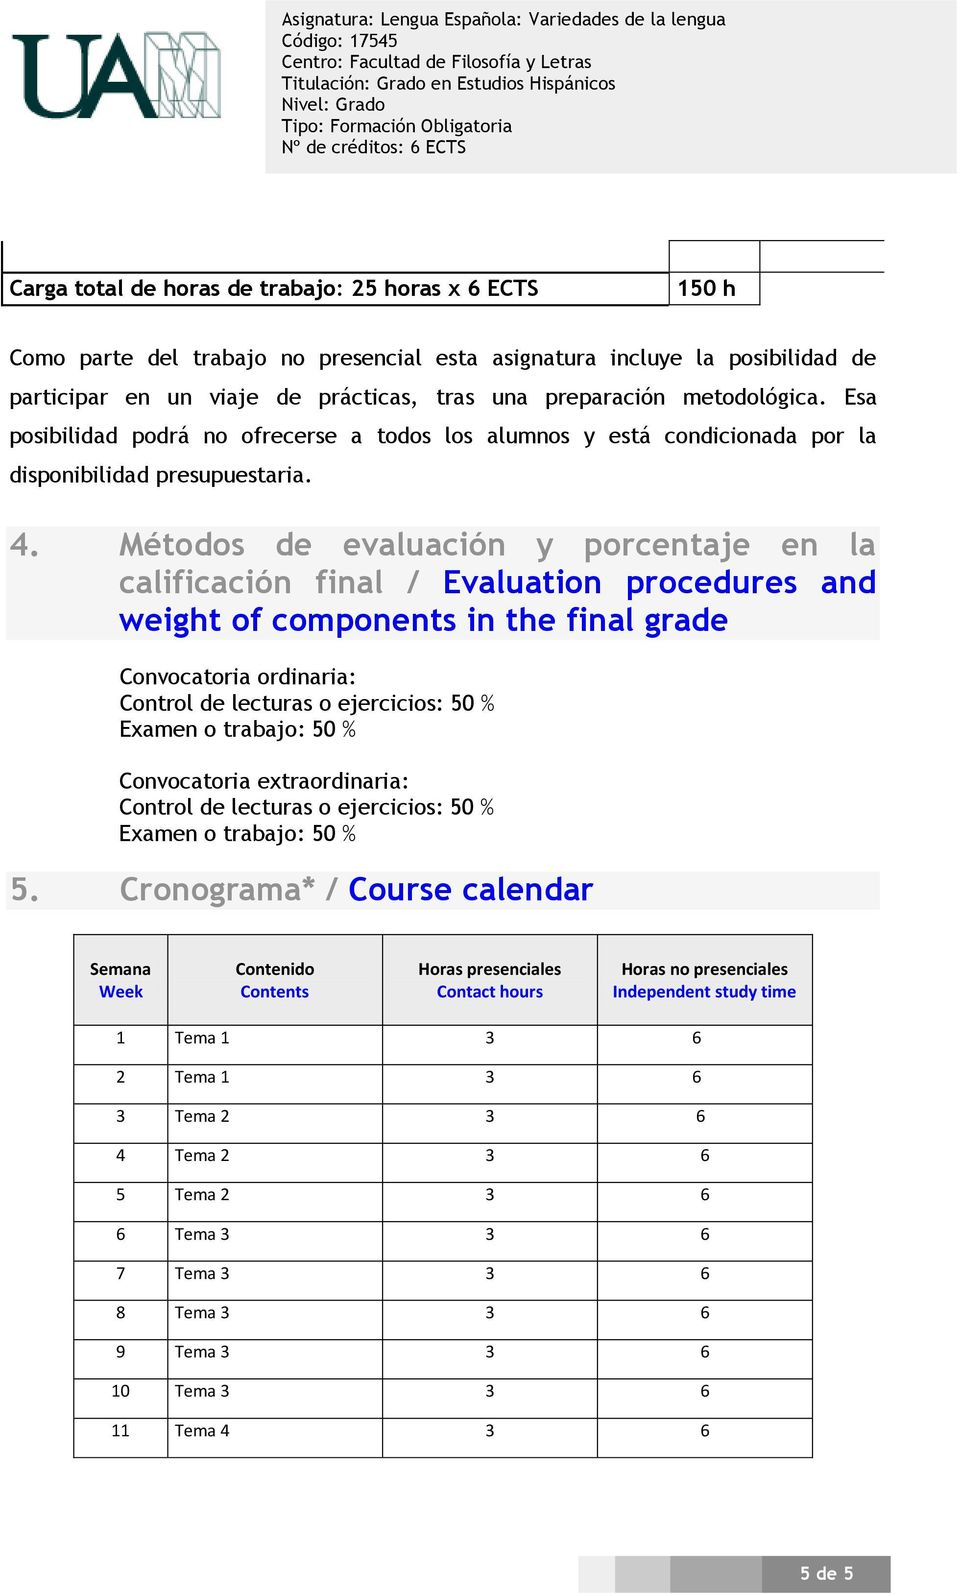 Métodos de evaluación y porcentaje en la calificación final / Evaluation procedures and weight of components in the final grade Convocatoria ordinaria: Control de lecturas o ejercicios: 50 % Examen o